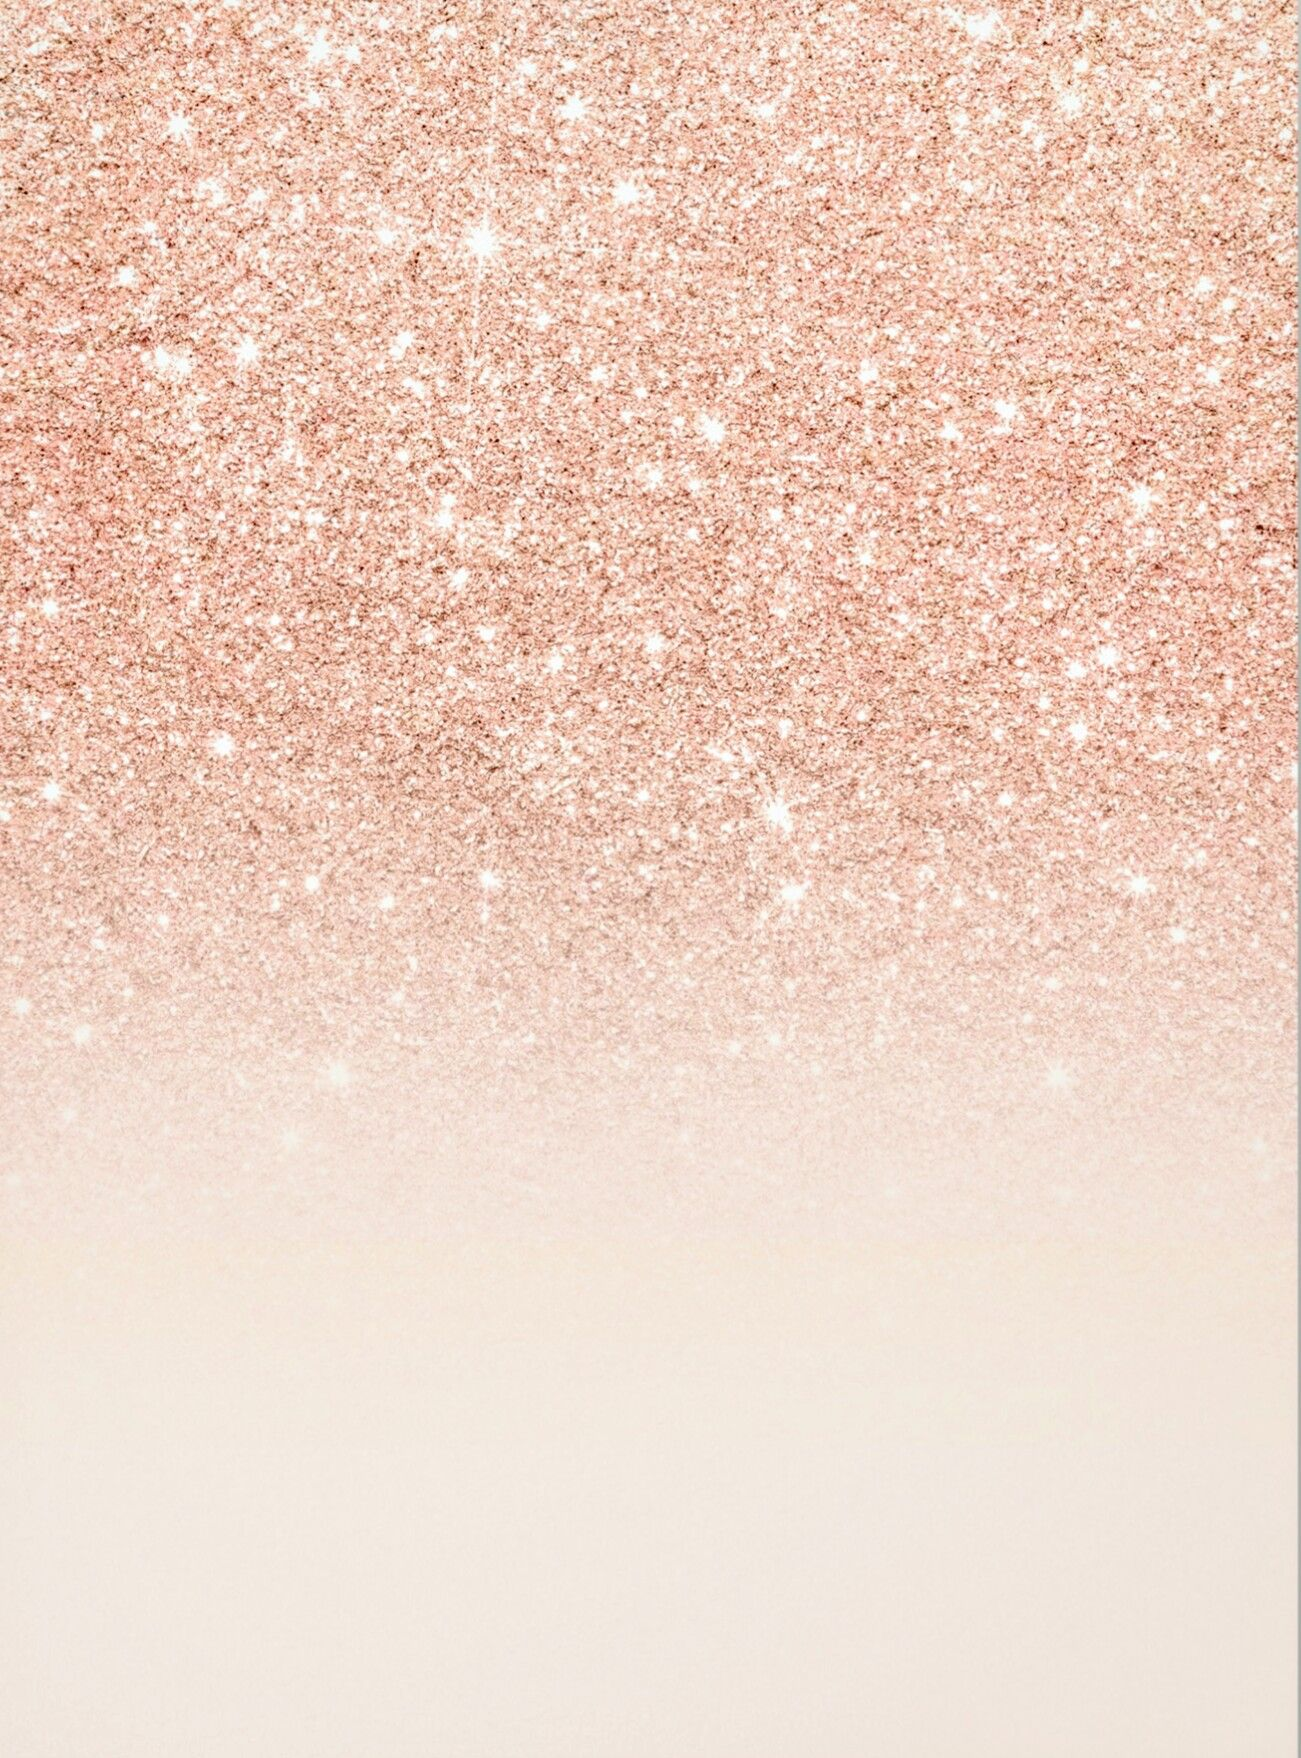 pinterest • xosarahxbethxo in 2020 Rose gold glitter